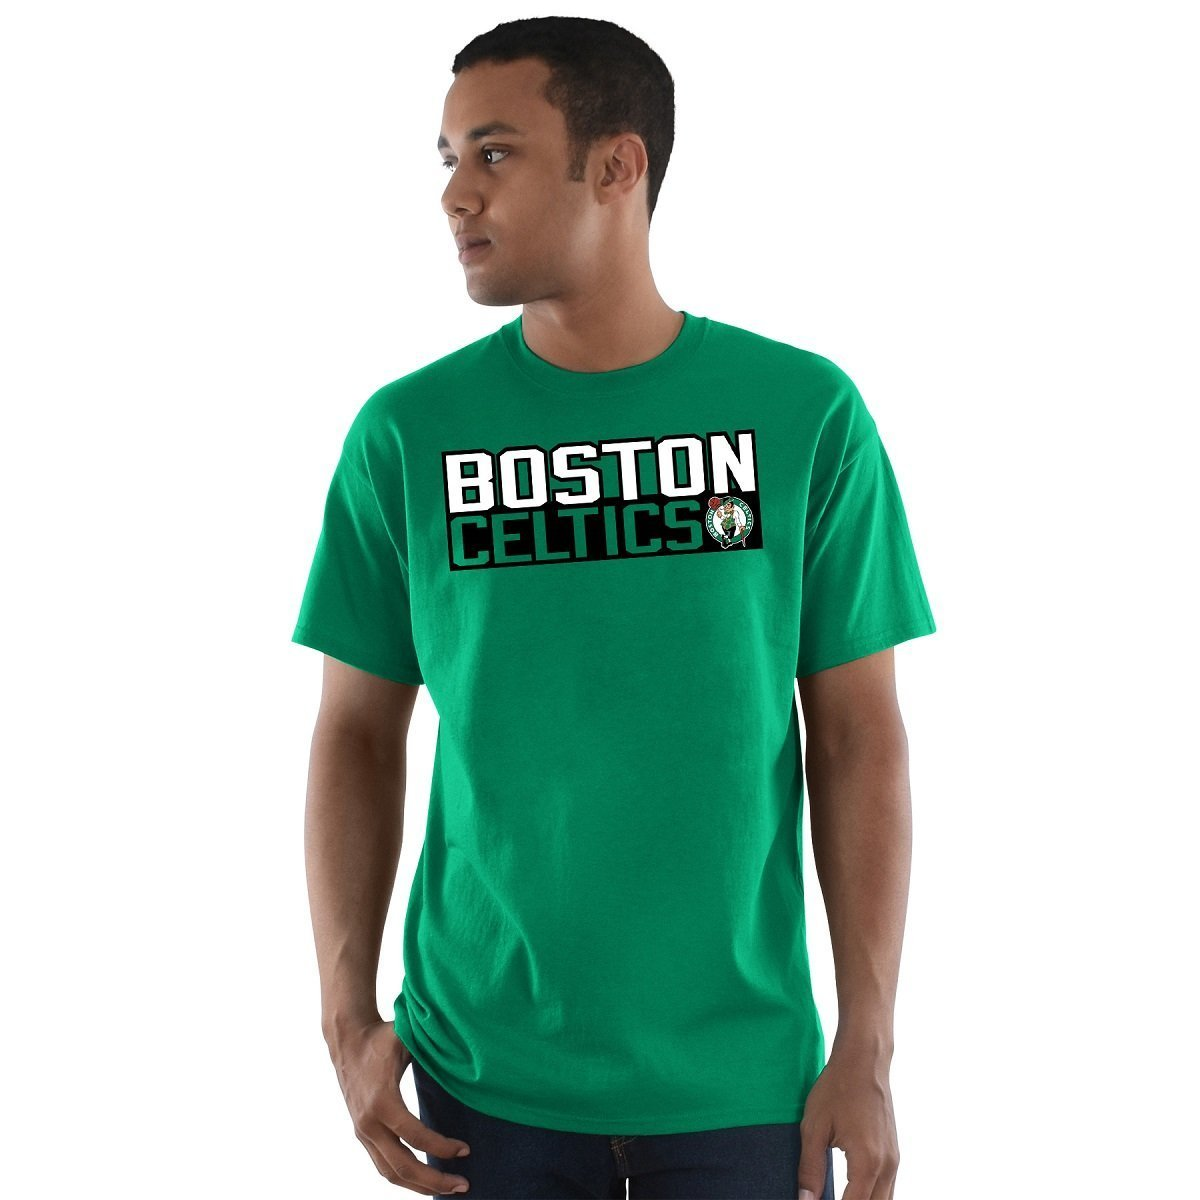 Football Fanatics Boston Celtics Kyrie Irving vertical jugador camiseta verde, Verde: Amazon.es: Deportes y aire libre